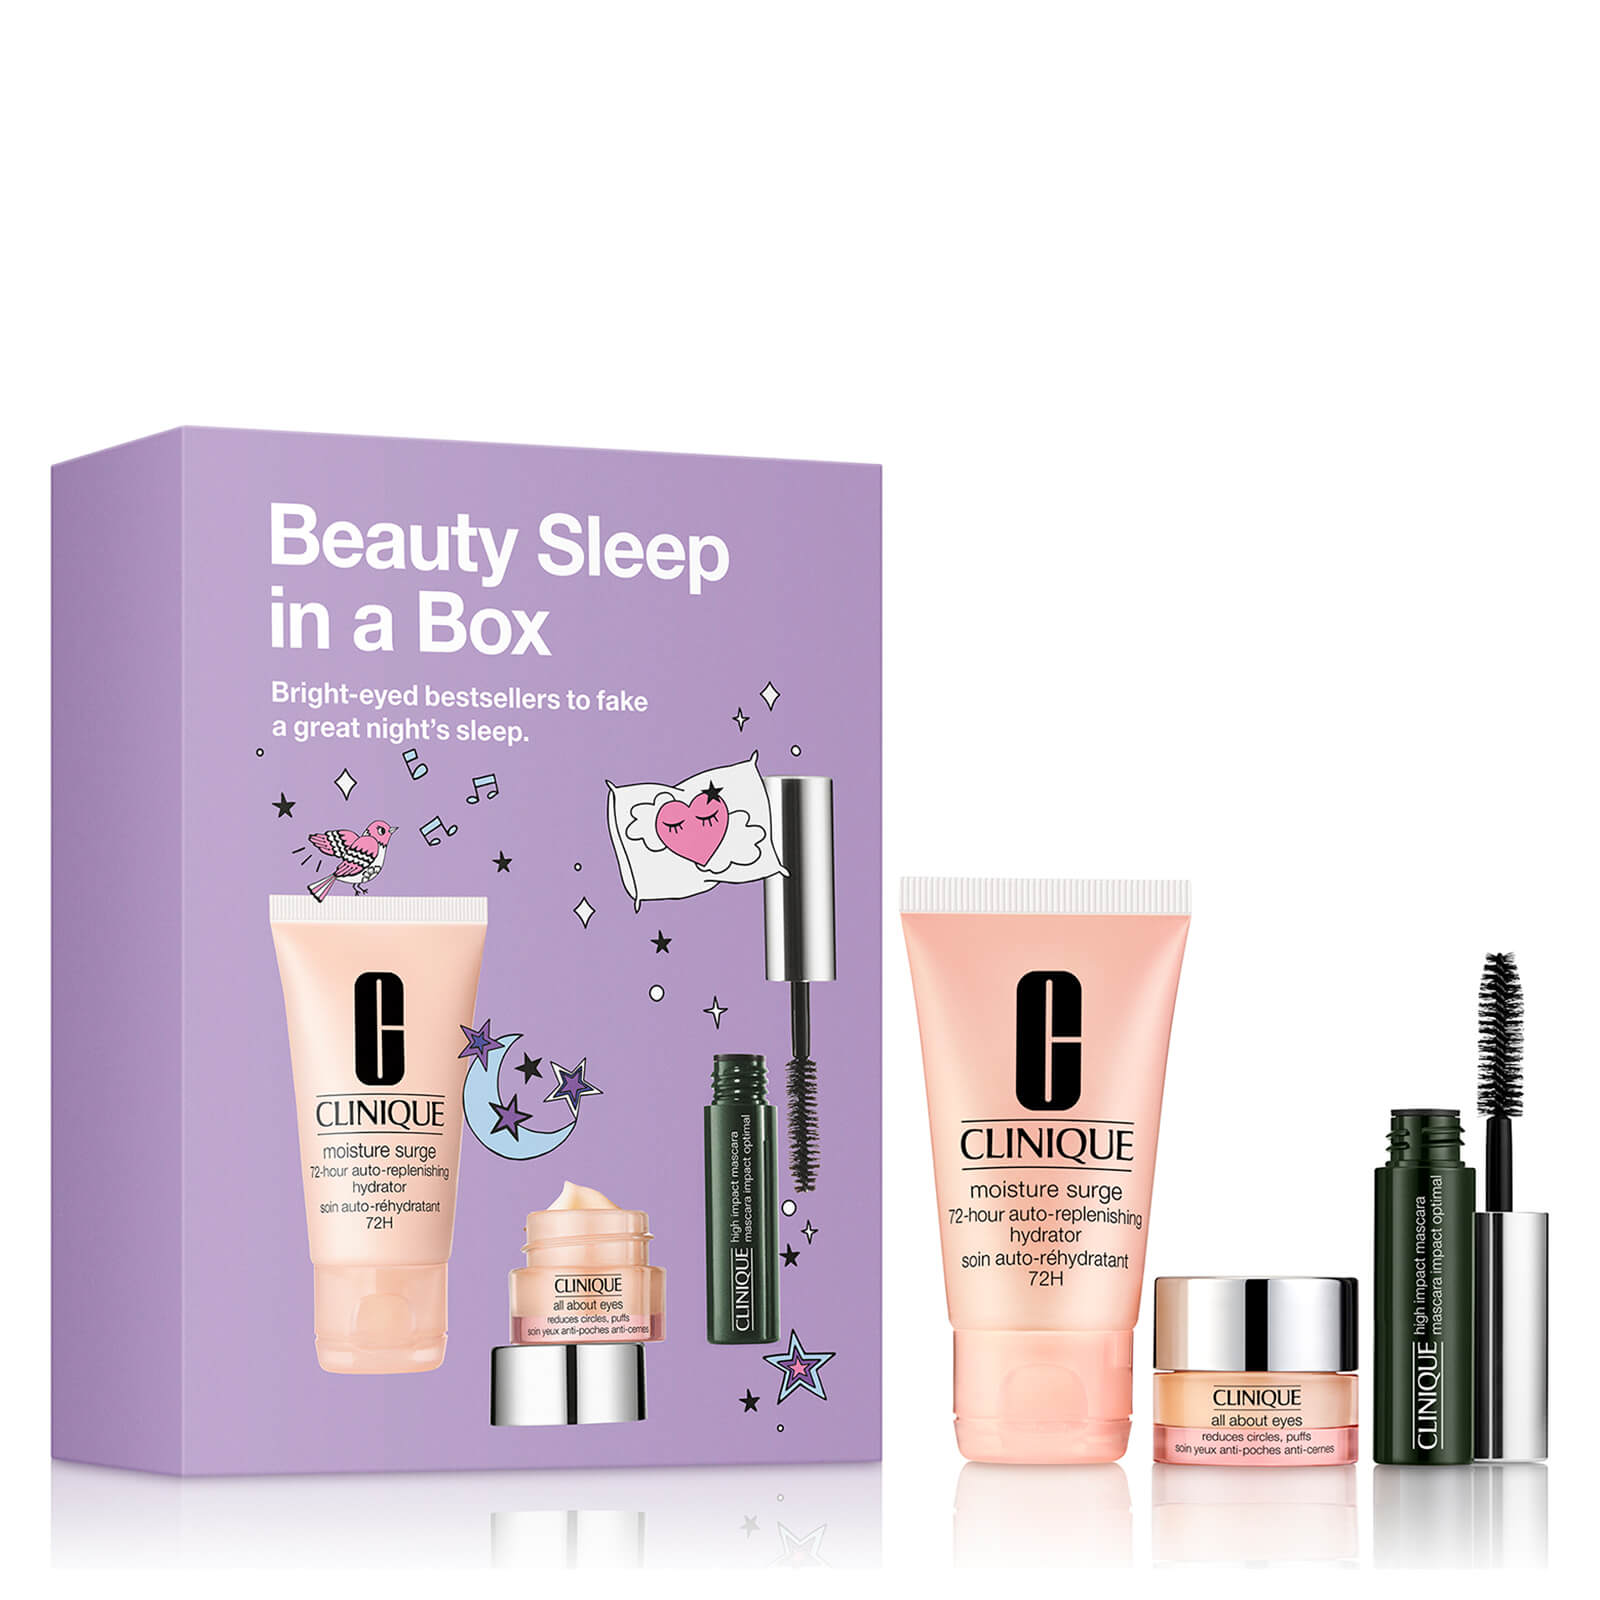 ce4bfce7562 Clinique Beauty Sleep in a Box Kit | Free Shipping | Lookfantastic